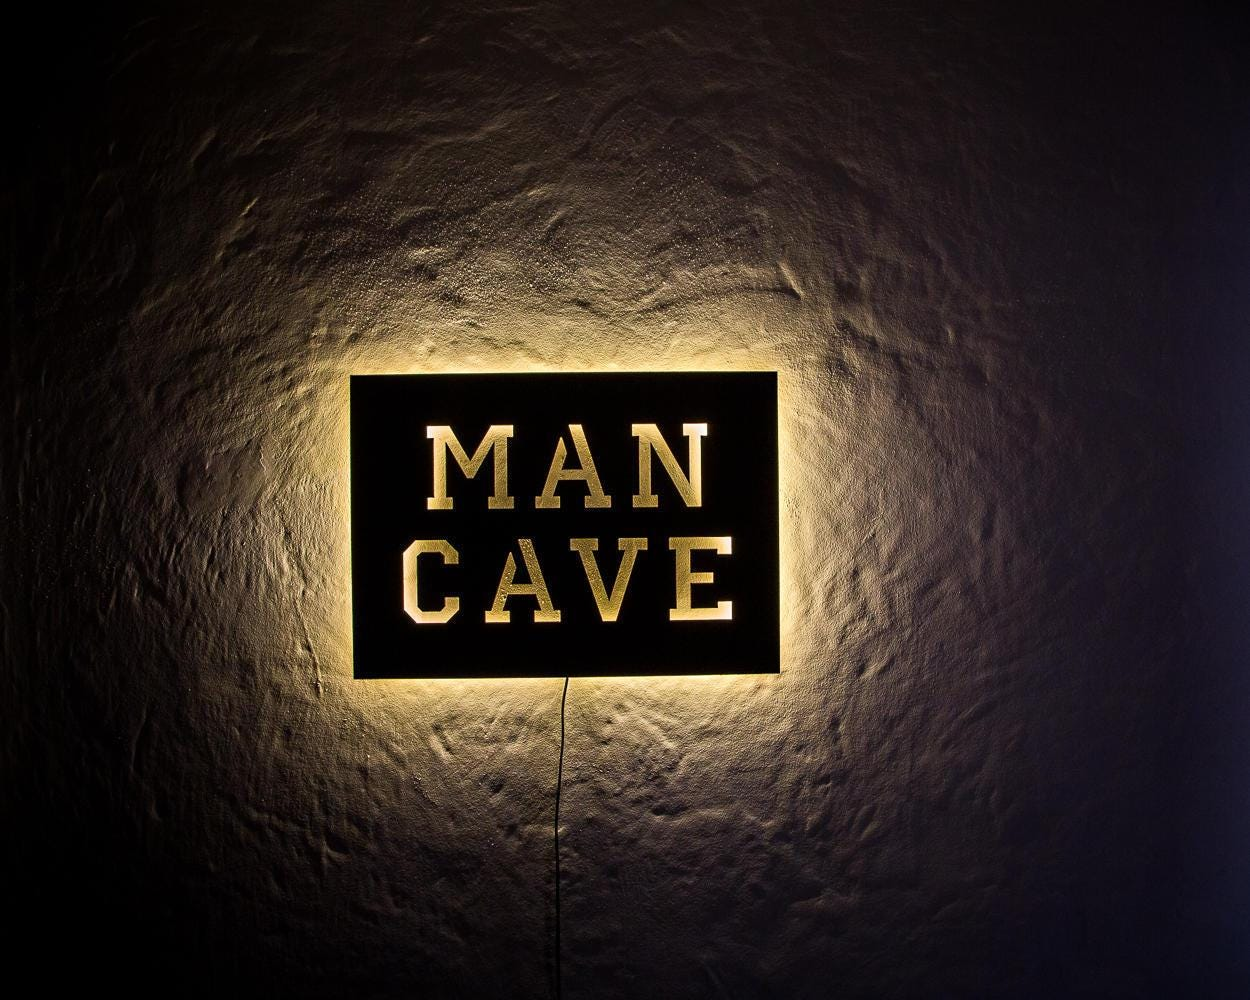 Homemade Man Cave Signs : Man cave led sign wall art handmade from mdf unique